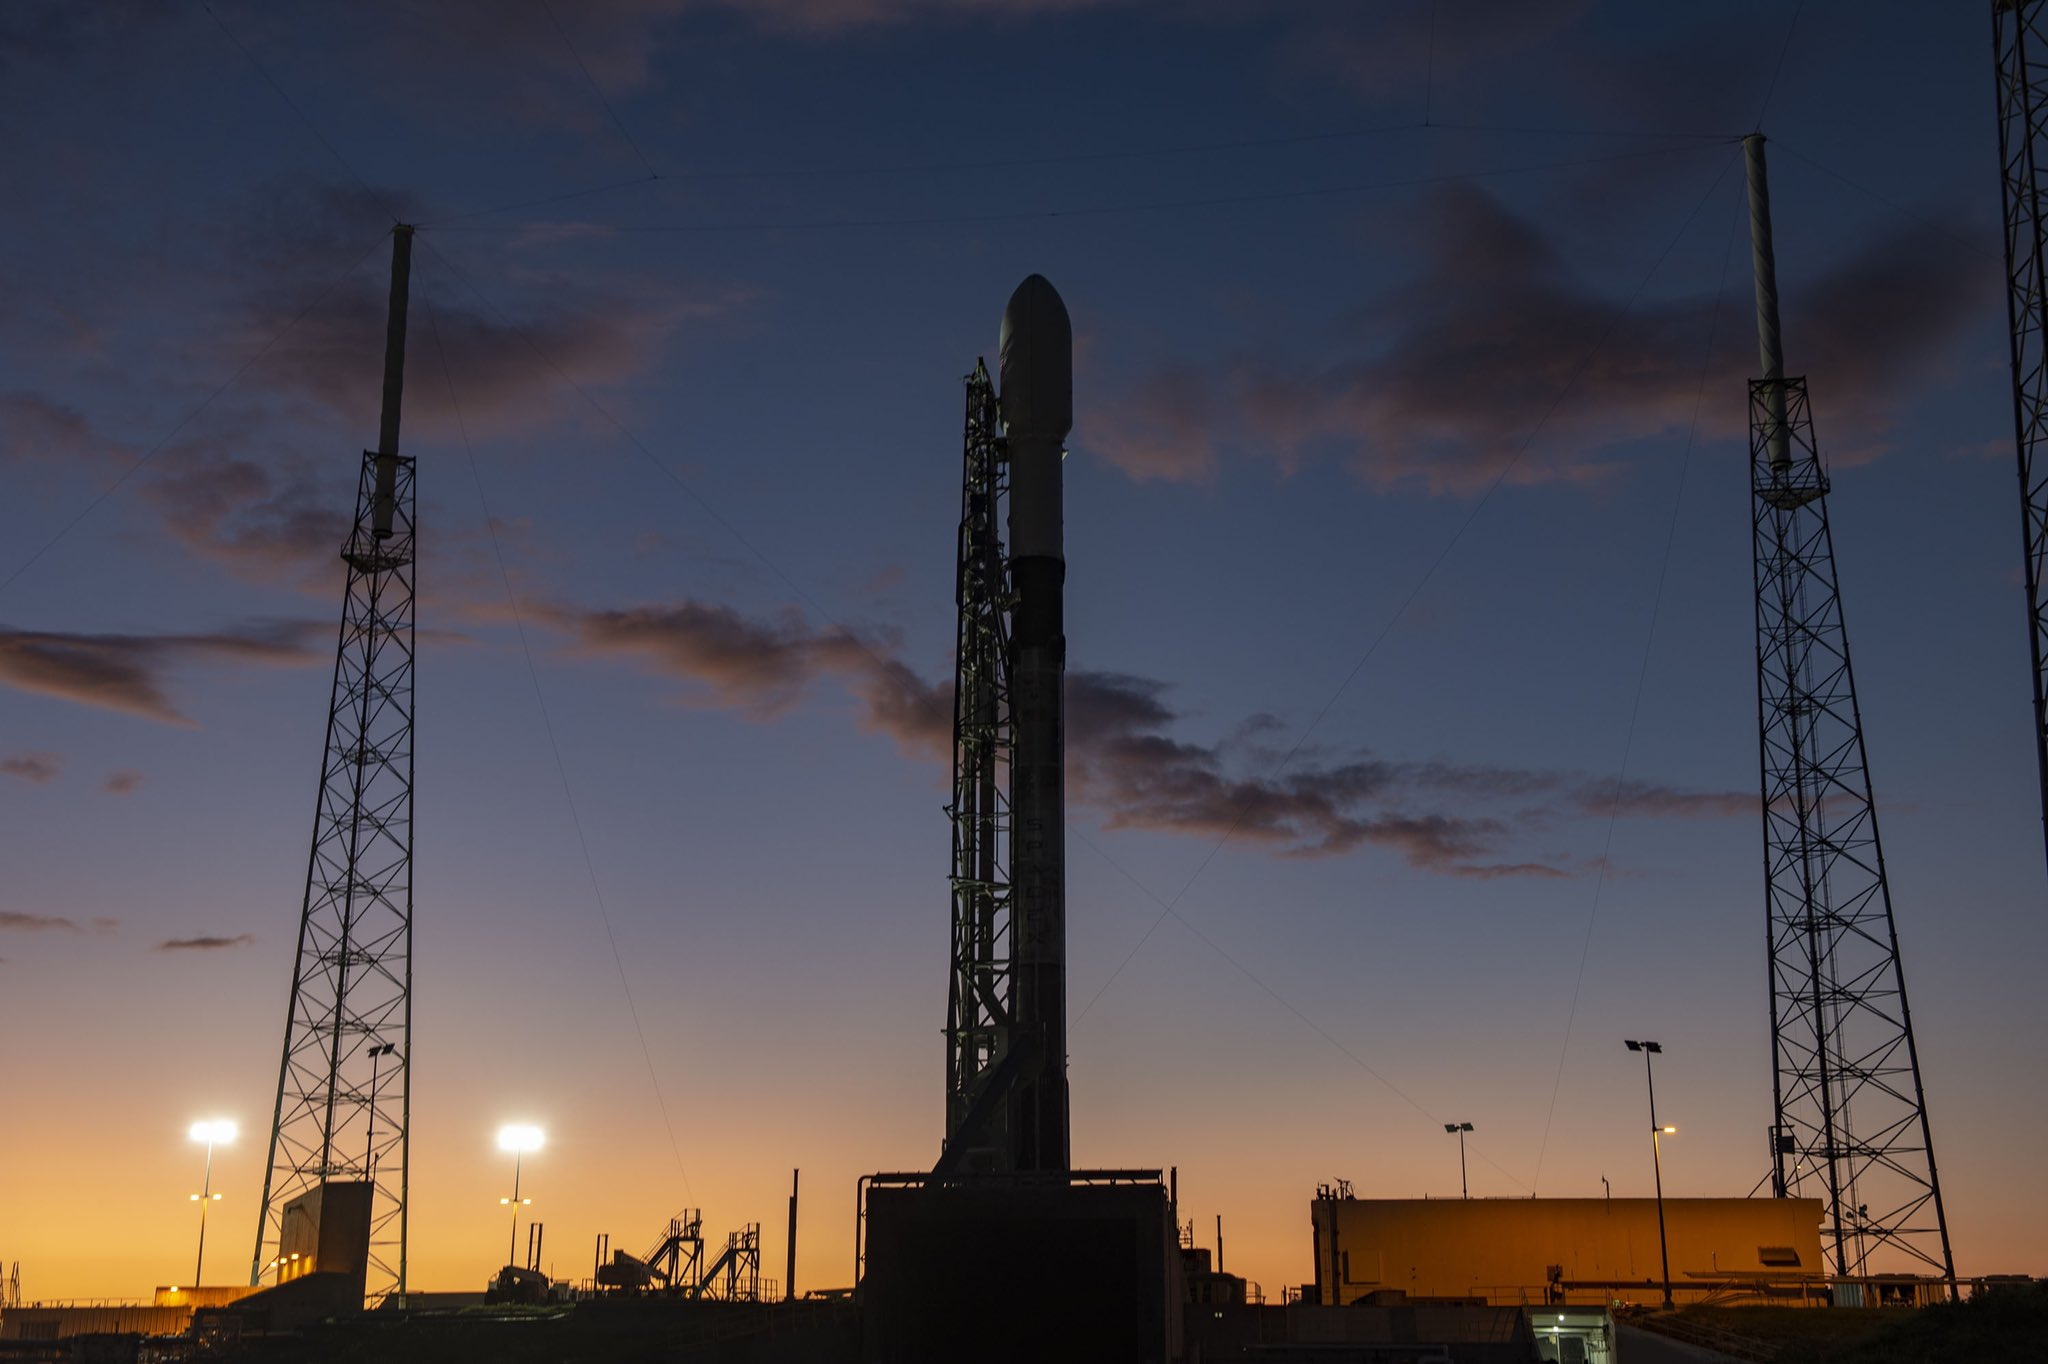 Starlink-1 Falcon 9 B1048 LC-40 vertical 111019 (SpaceX) 2